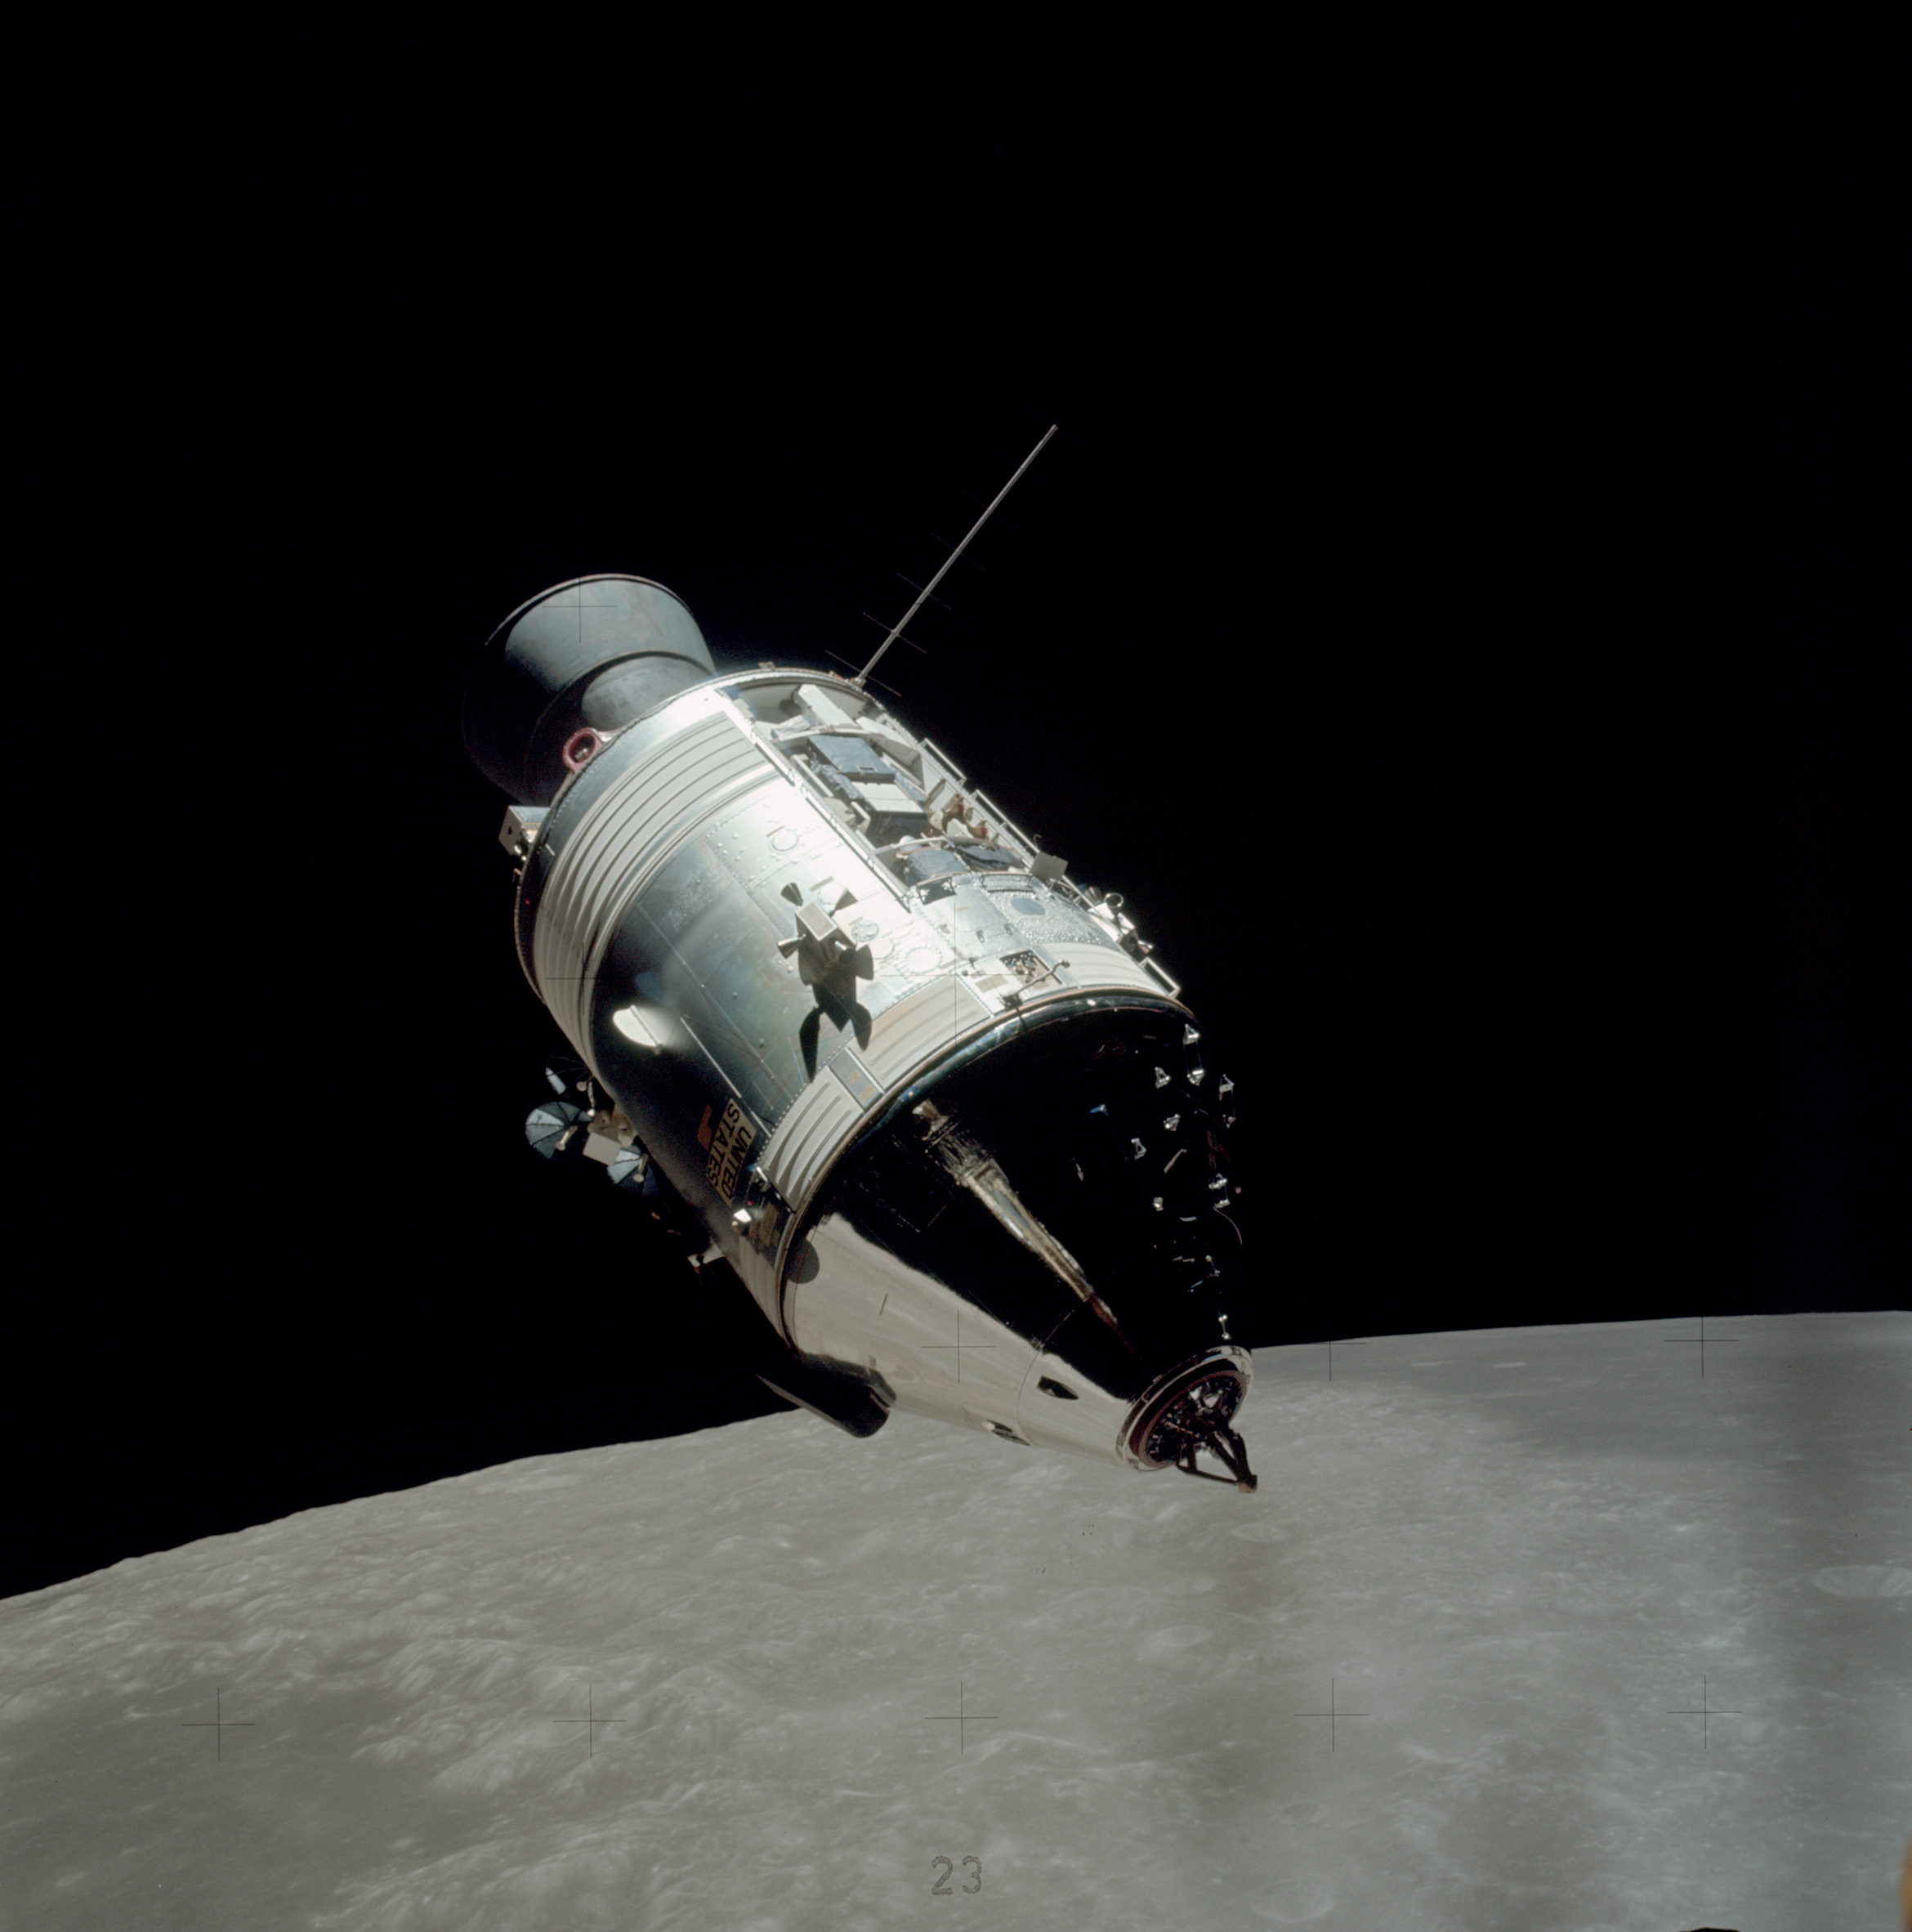 apollo space orbit - photo #2